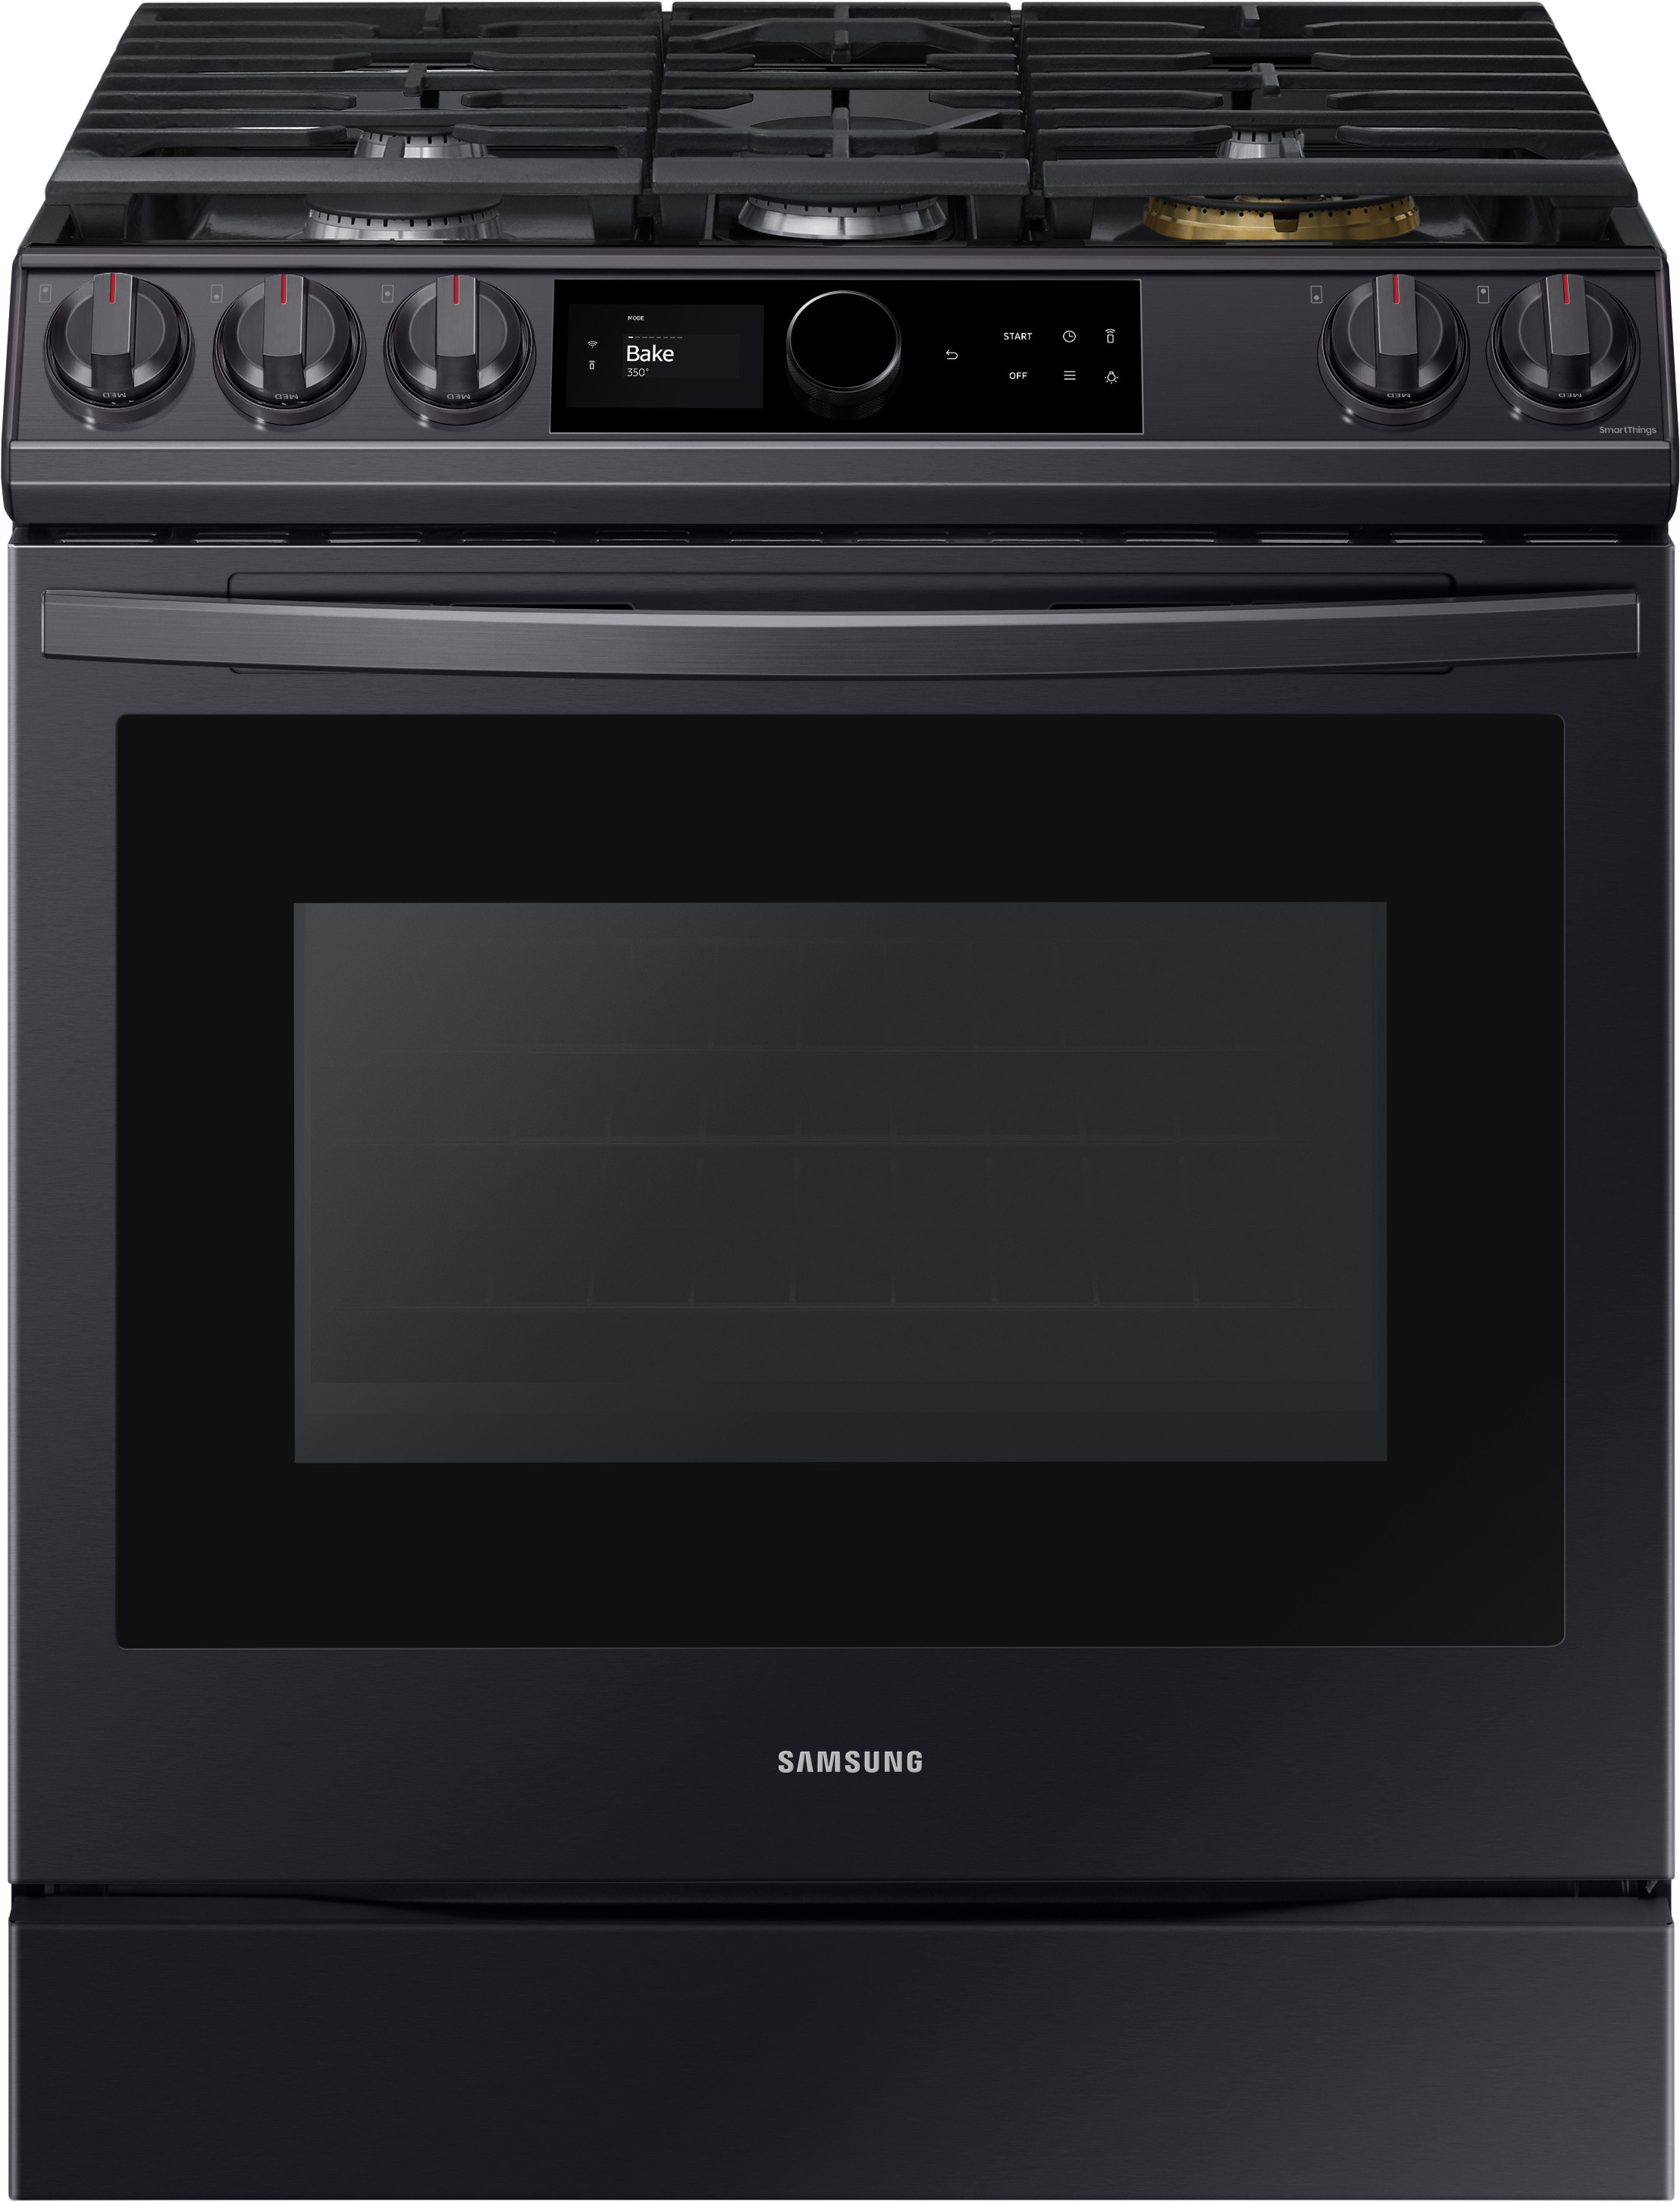 Samsung Nx60t8711sg 30 Inch Slide In Smart Gas Range With 5 Sealed Burners 6 0 Cu Ft Oven Capacity Edge To Edge Grates Air Fry Convection Self Clean Smart Dial Wi Fi Voice Enabled Power Burner Sabbath Mode